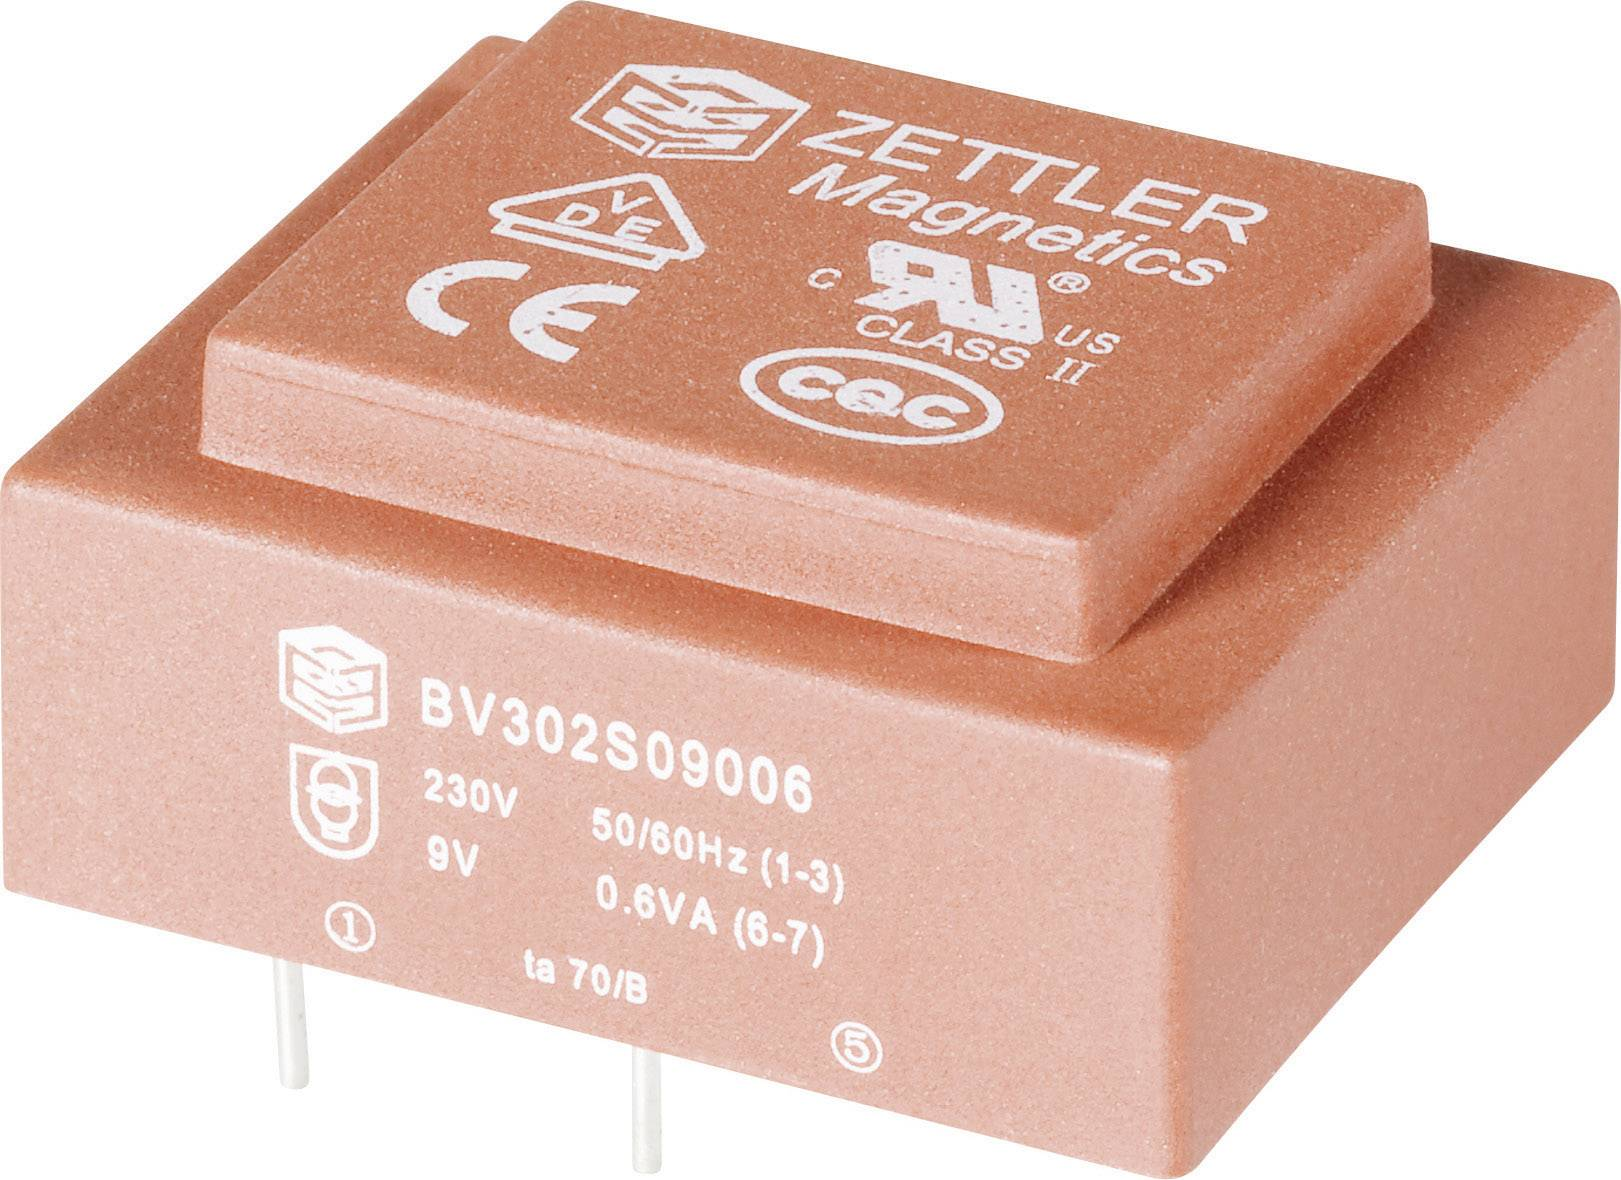 Transformátor do DPS Zettler Magnetics El30, 230 V/9 V, 66 mA, 0,6 VA